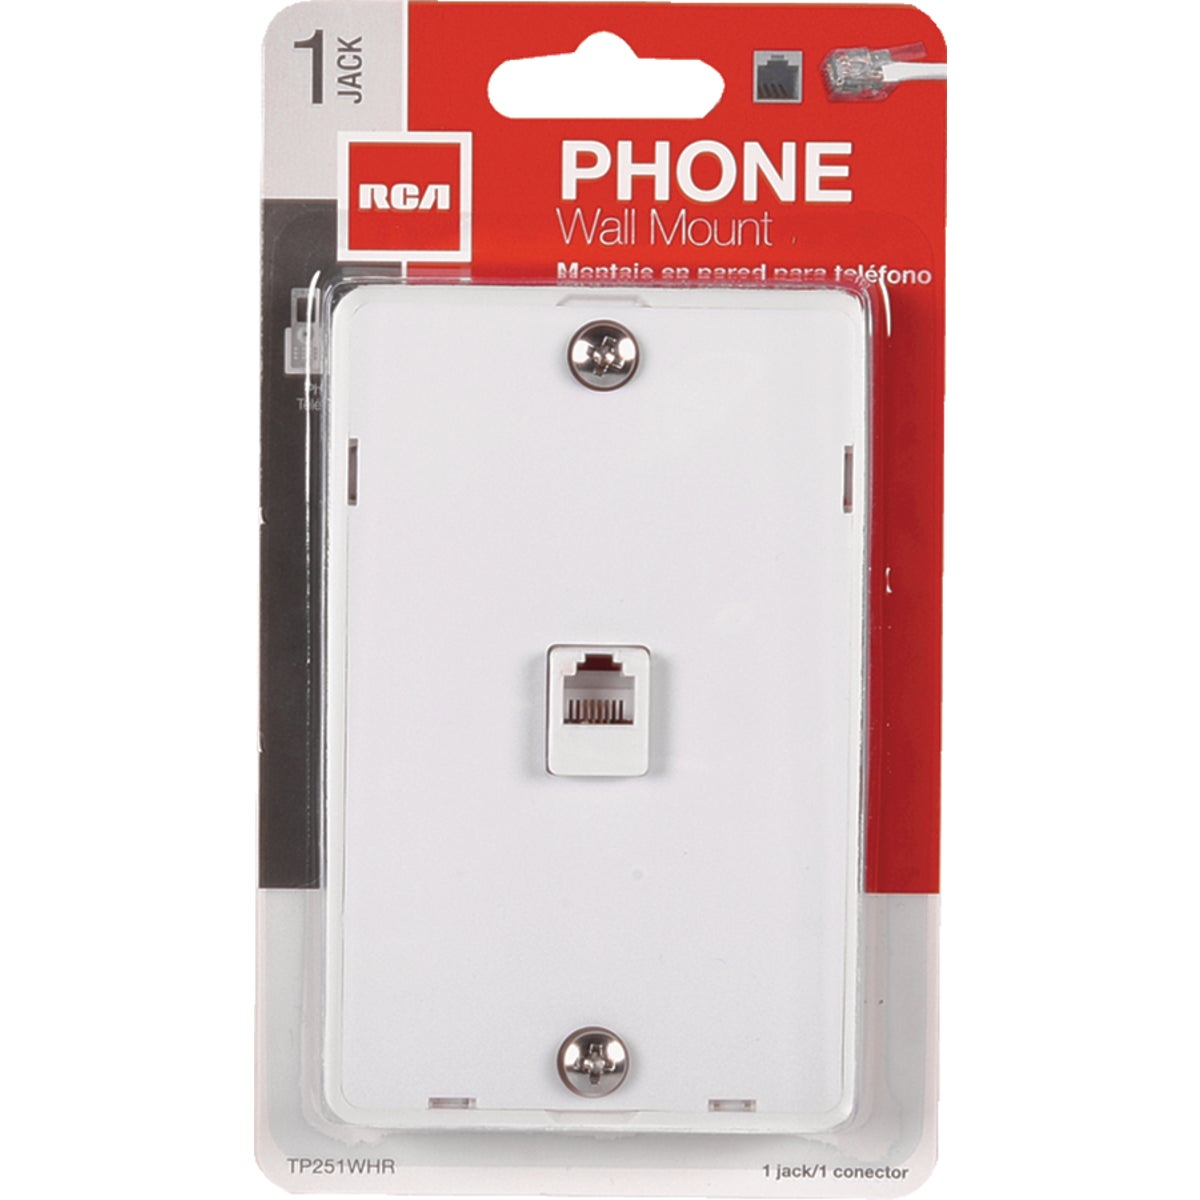 WHT WALL PHONE JACK - TP251WHRV by Audiovox Accessories